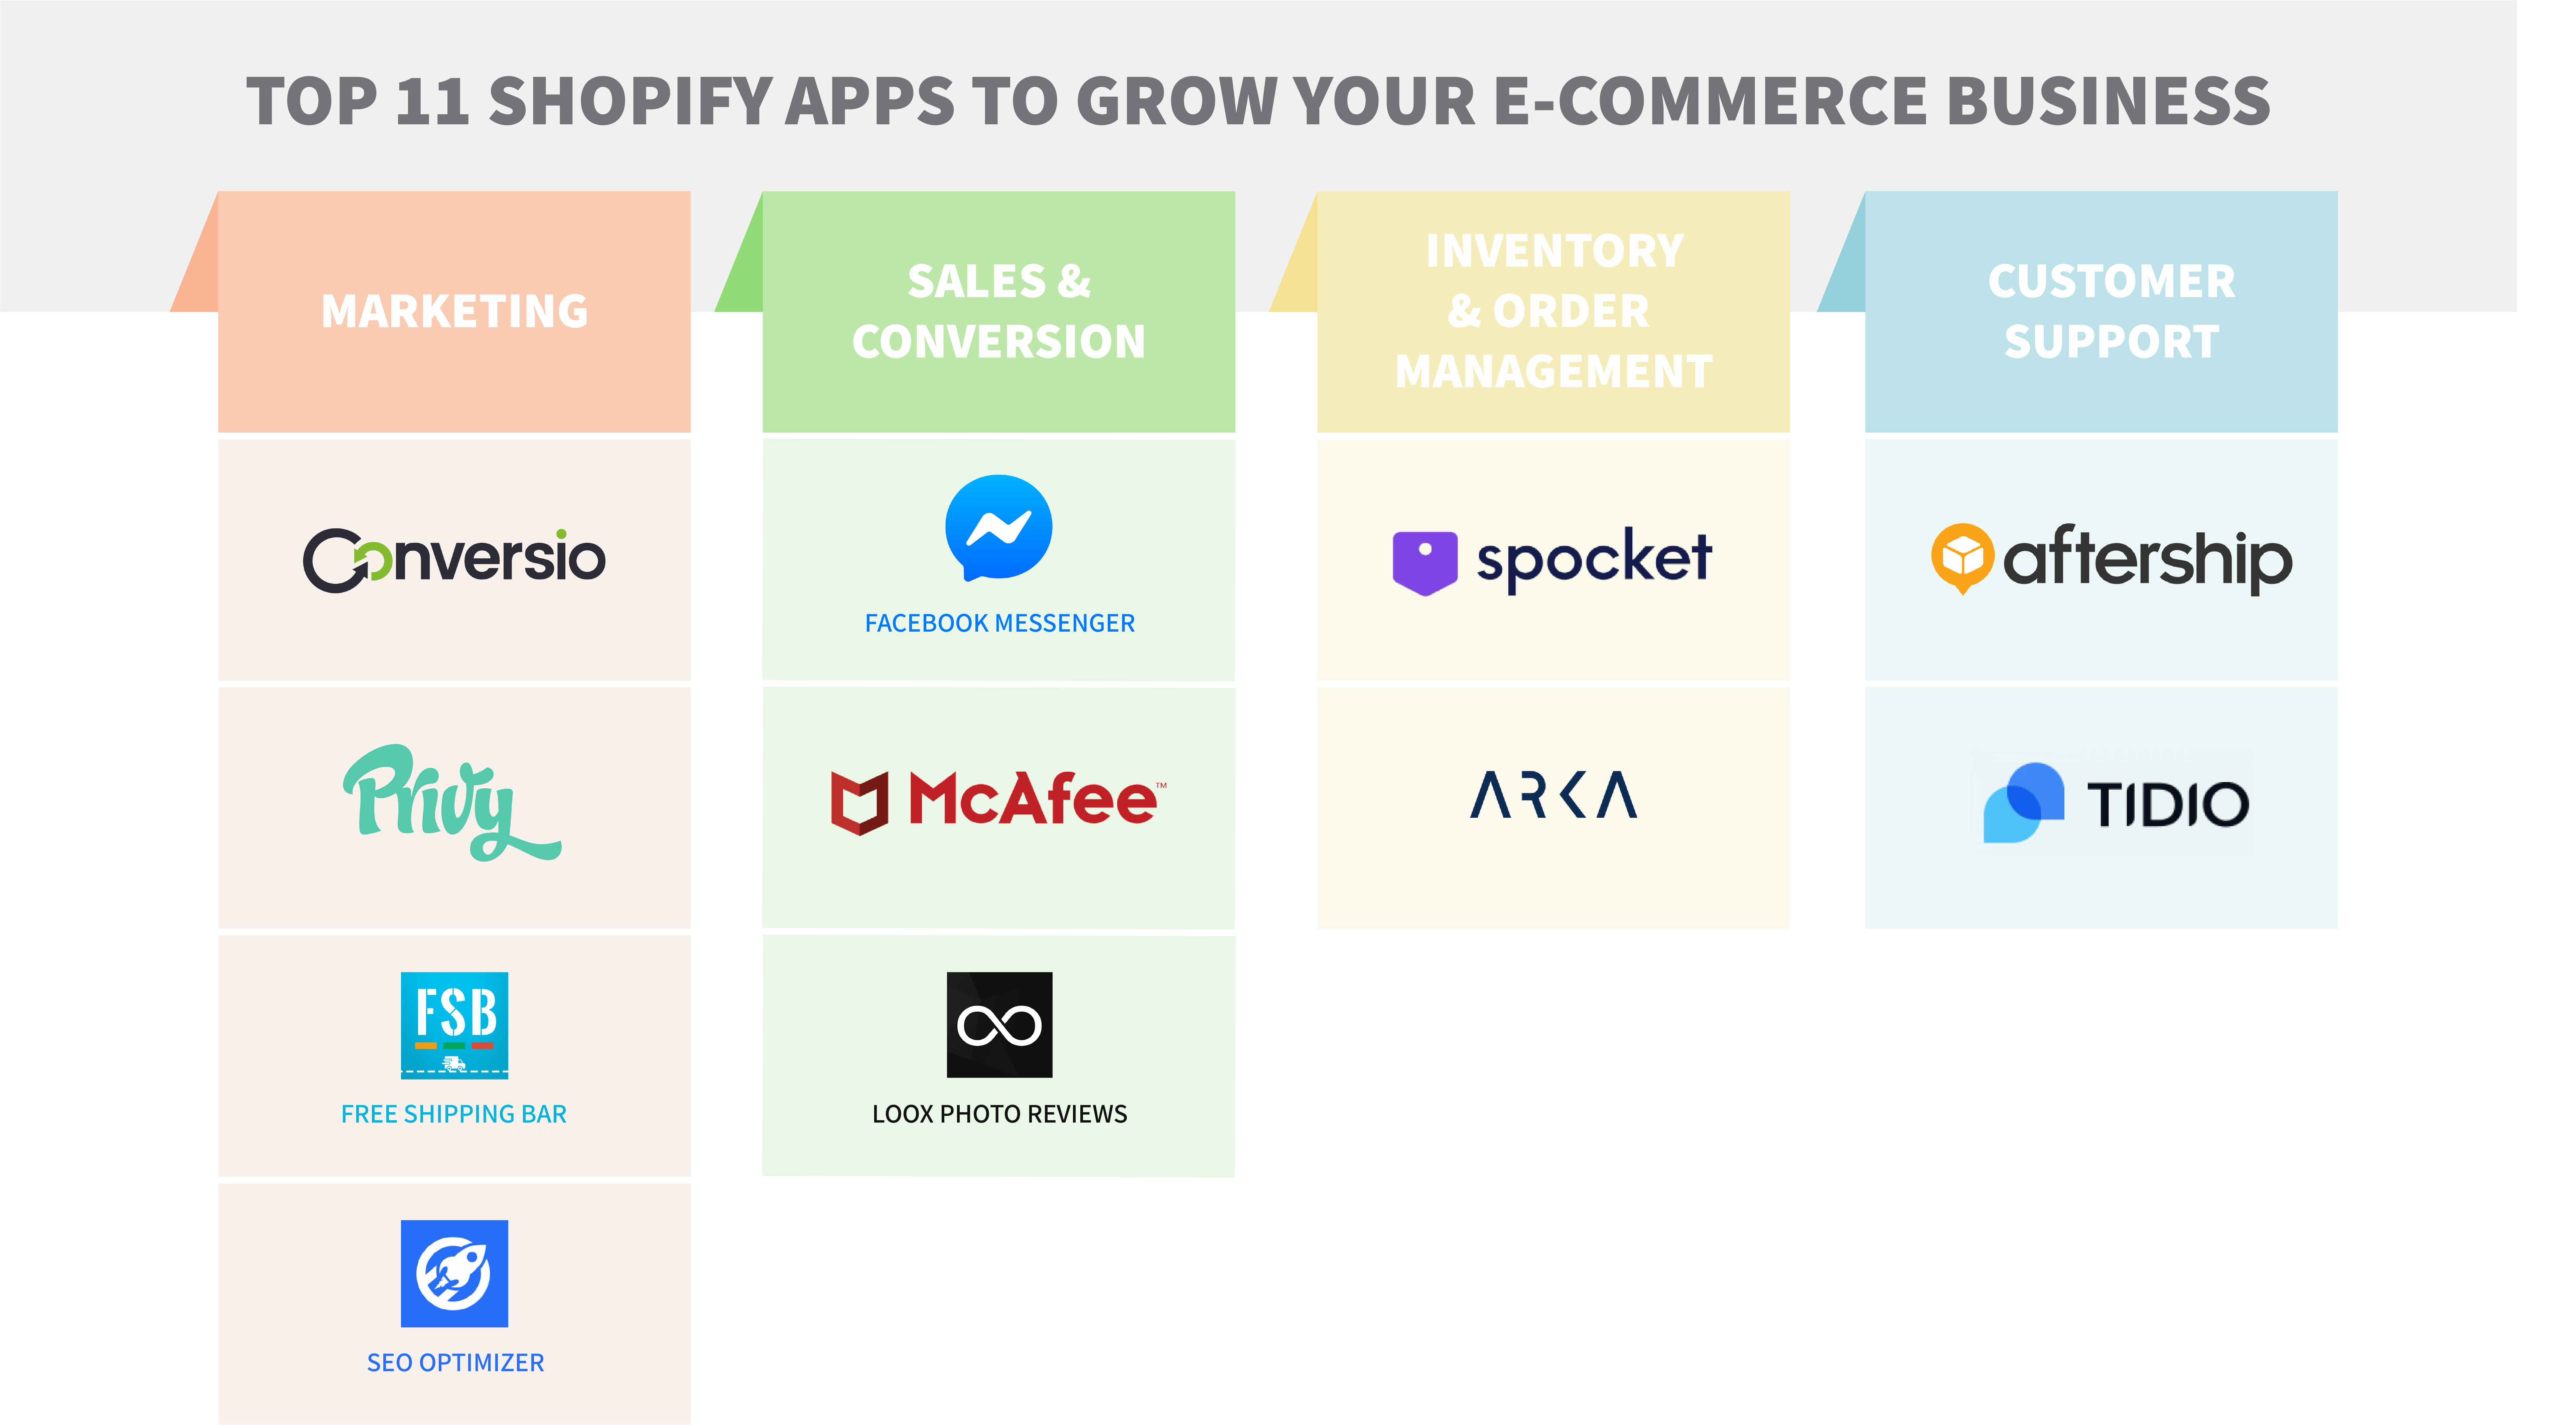 Top 11 Shopify Apps to Grow Your E-Commerce Business